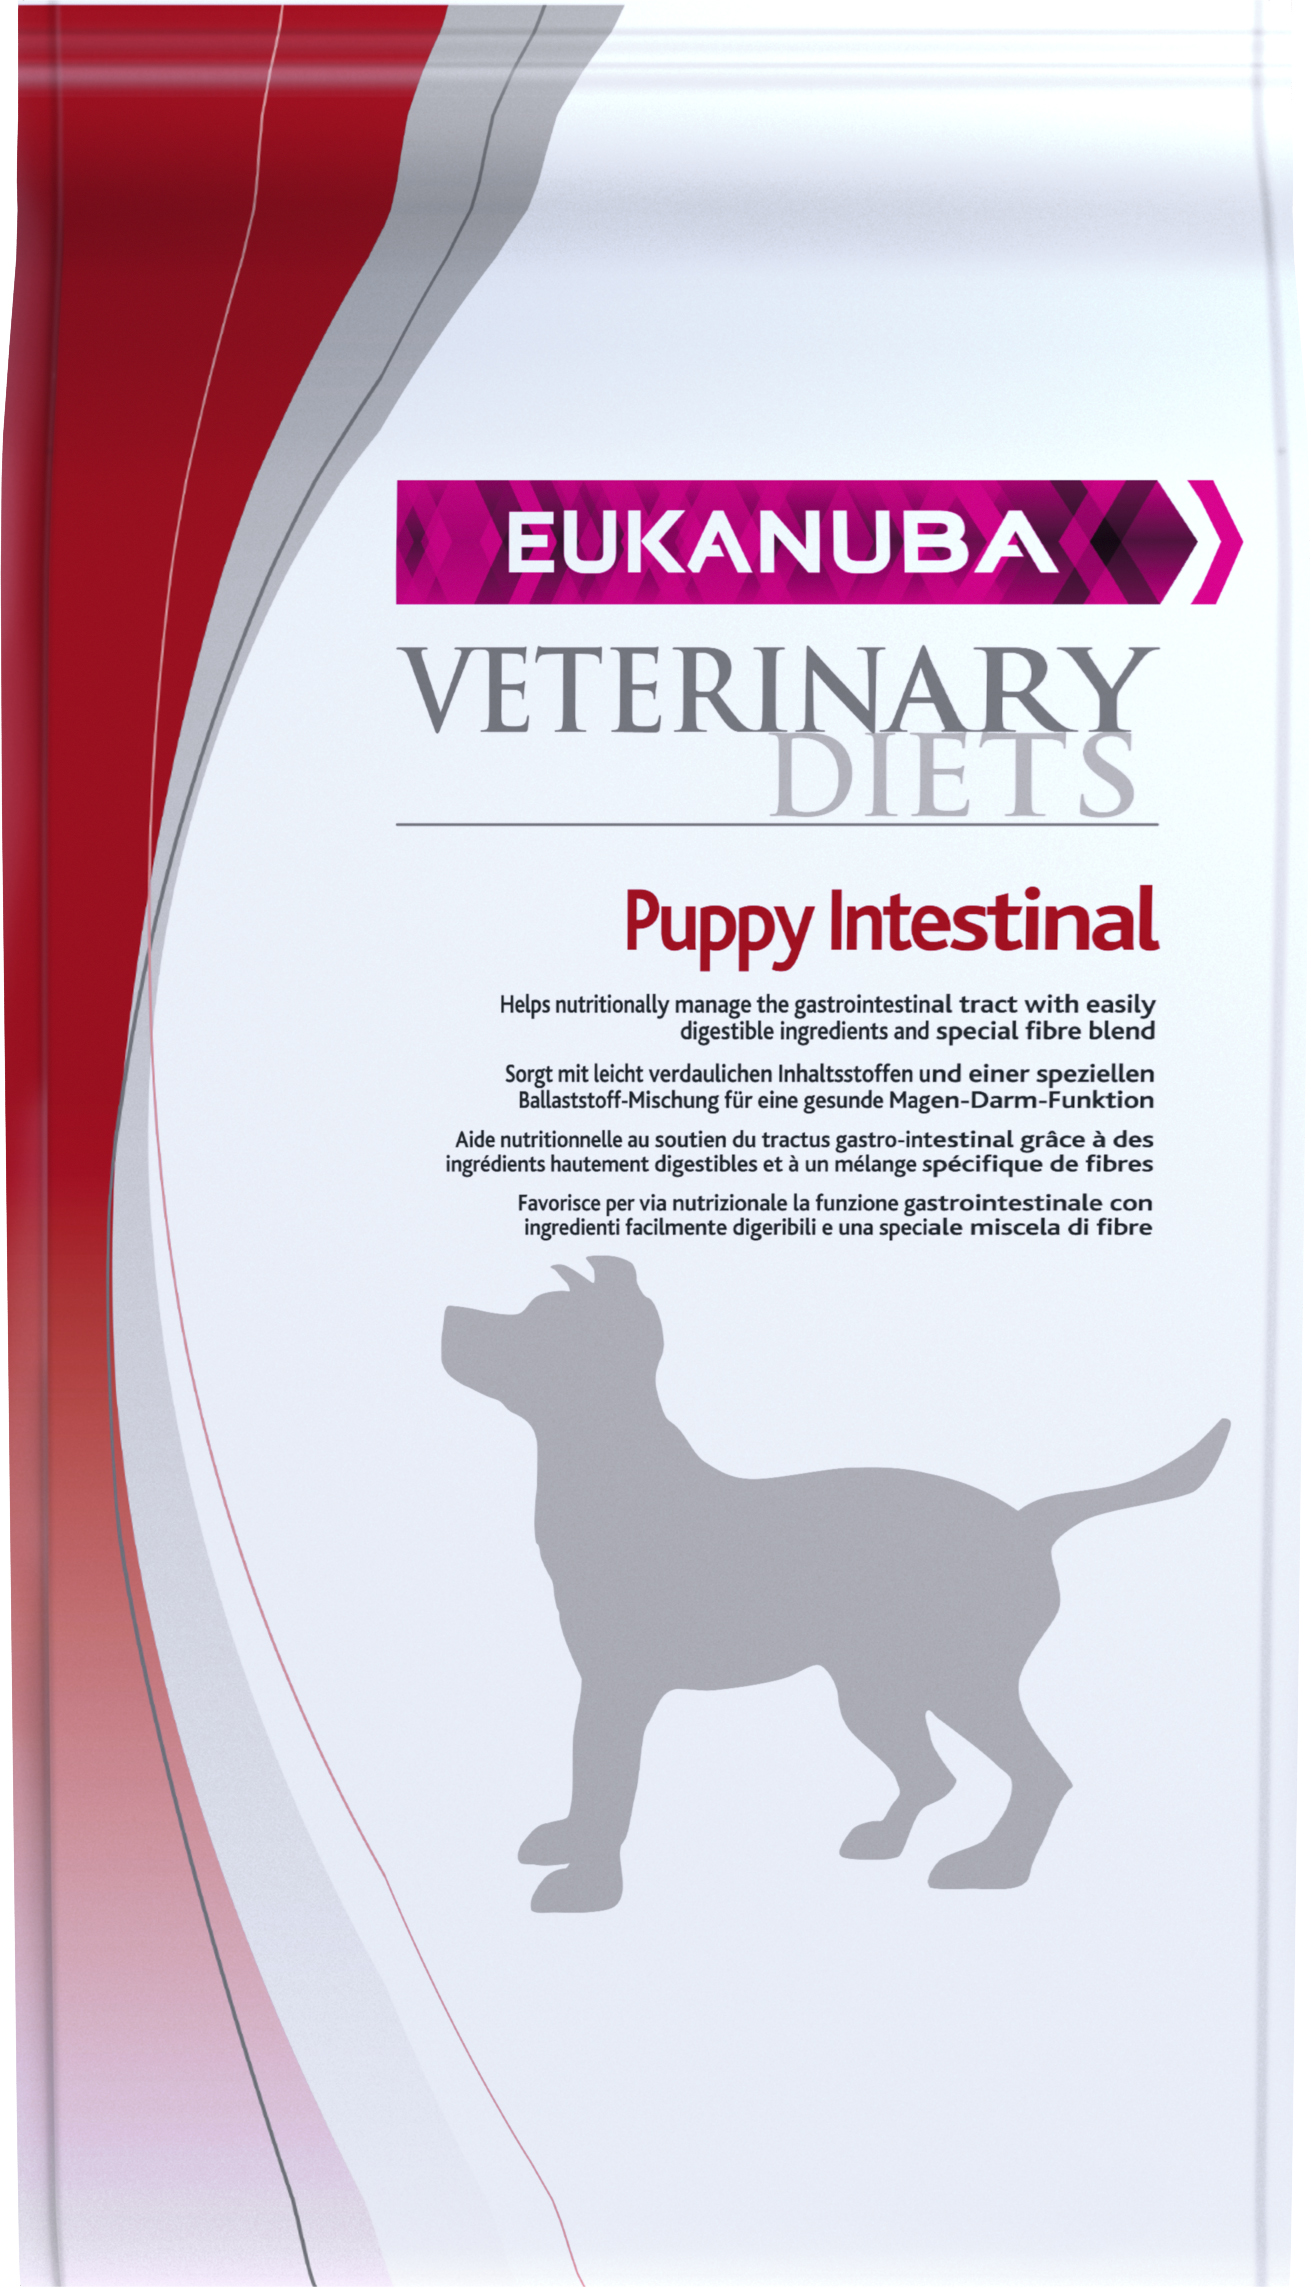 INTESTINAL FORMULA FOR PUPPIES 1 KG(PROMO DICIEMBRE)